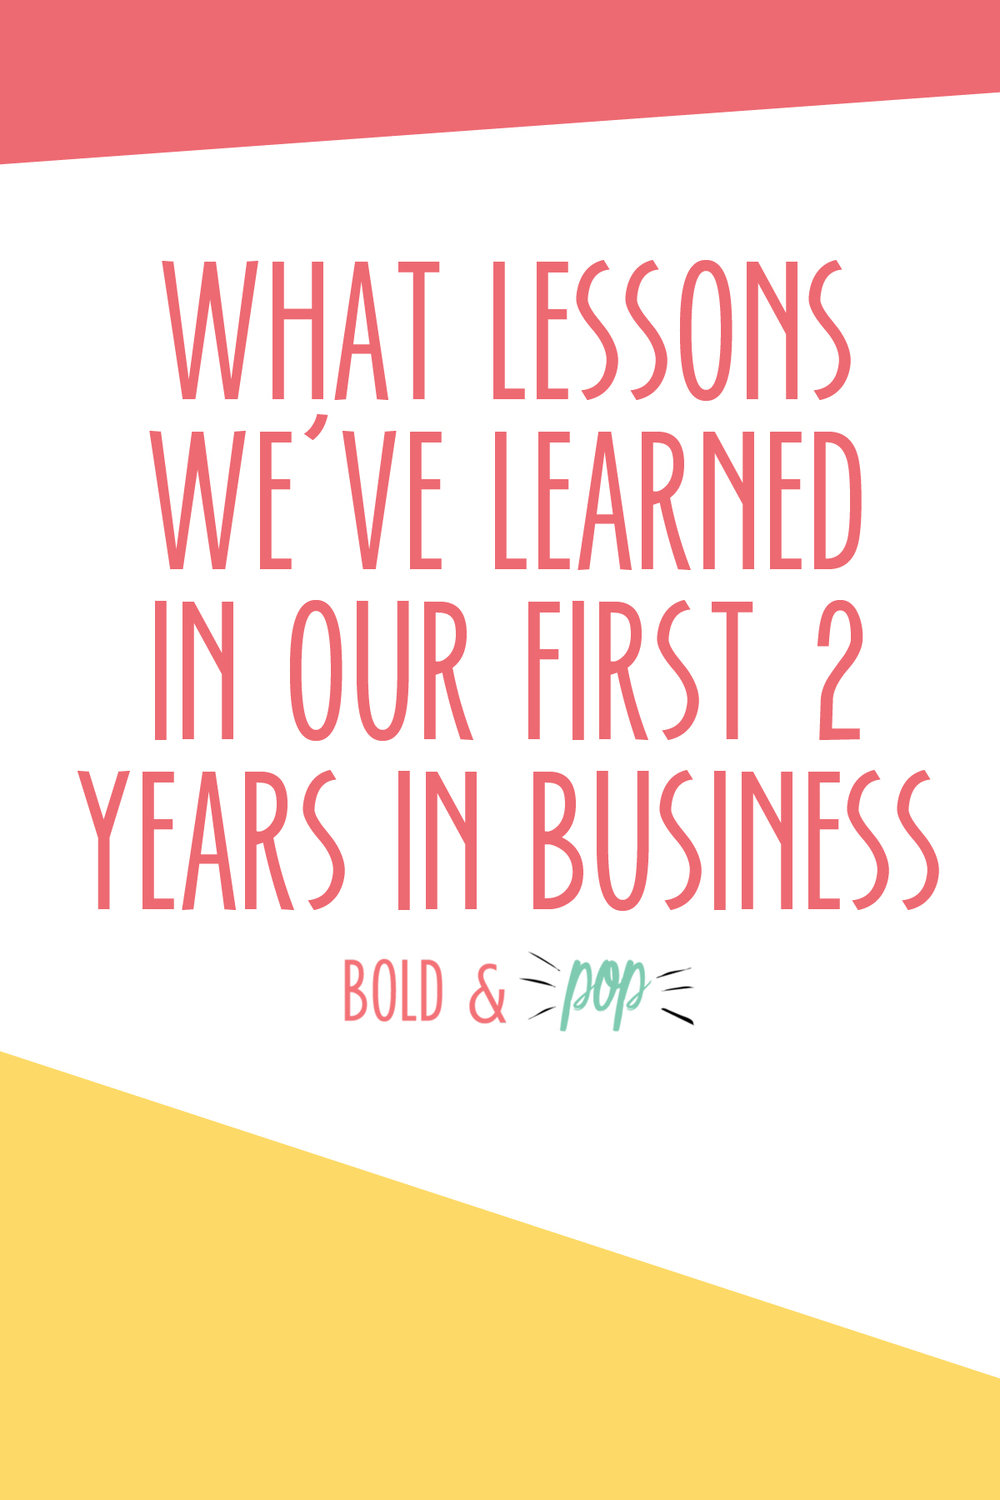 Bold & Pop : What Lessons We've Learned in Our First 2 Years In Business